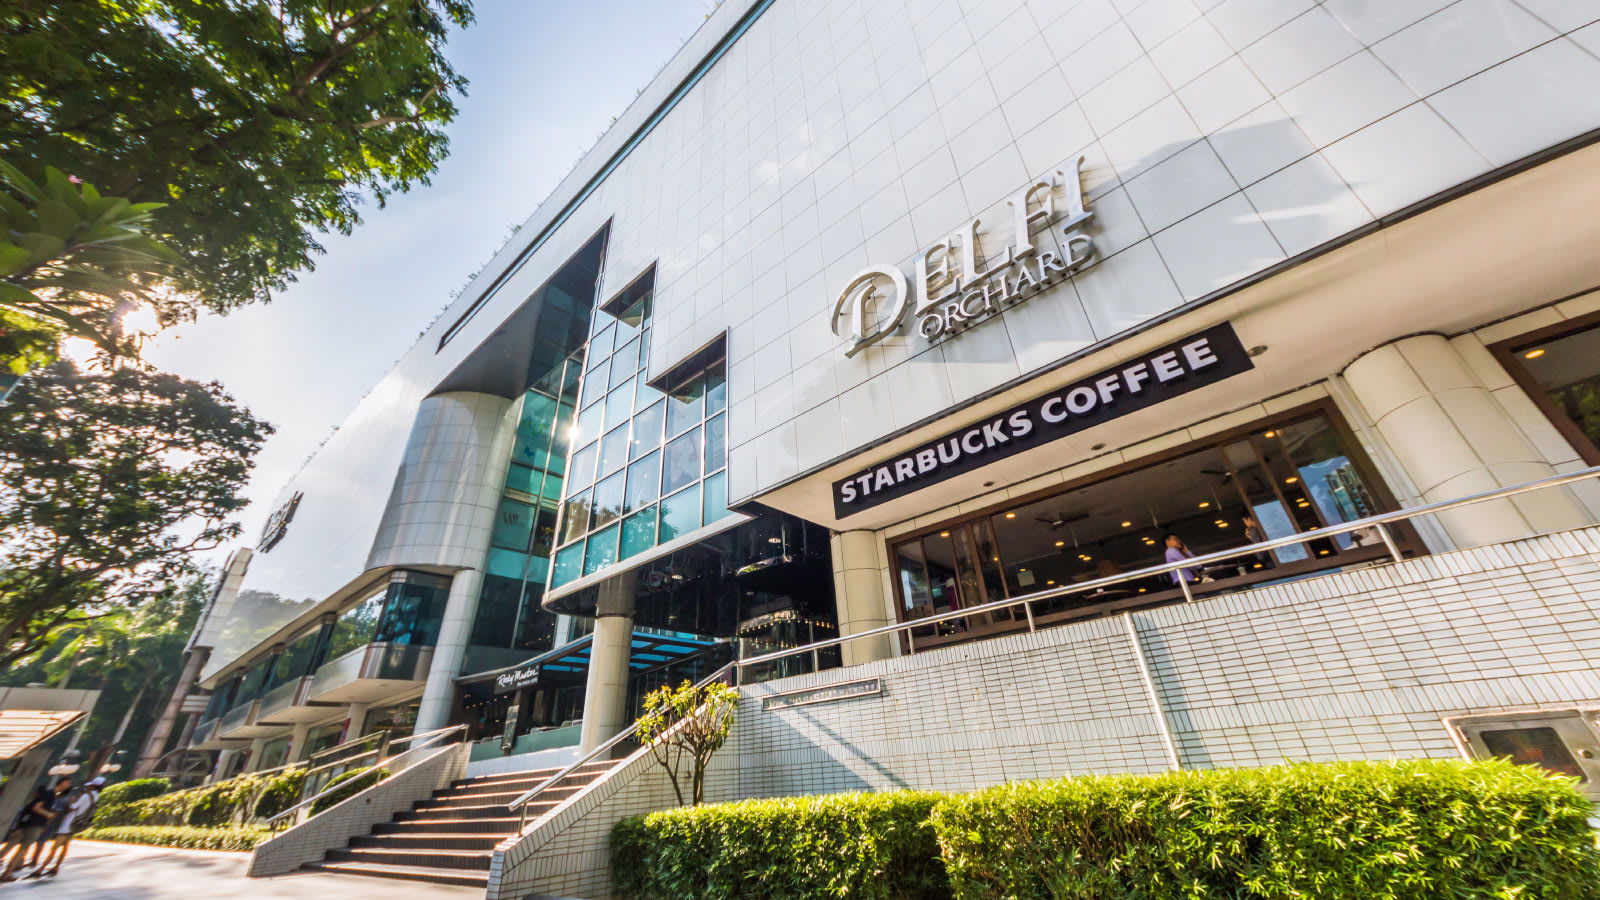 Delfi Orchard: The haven for women seeking some quality me-time